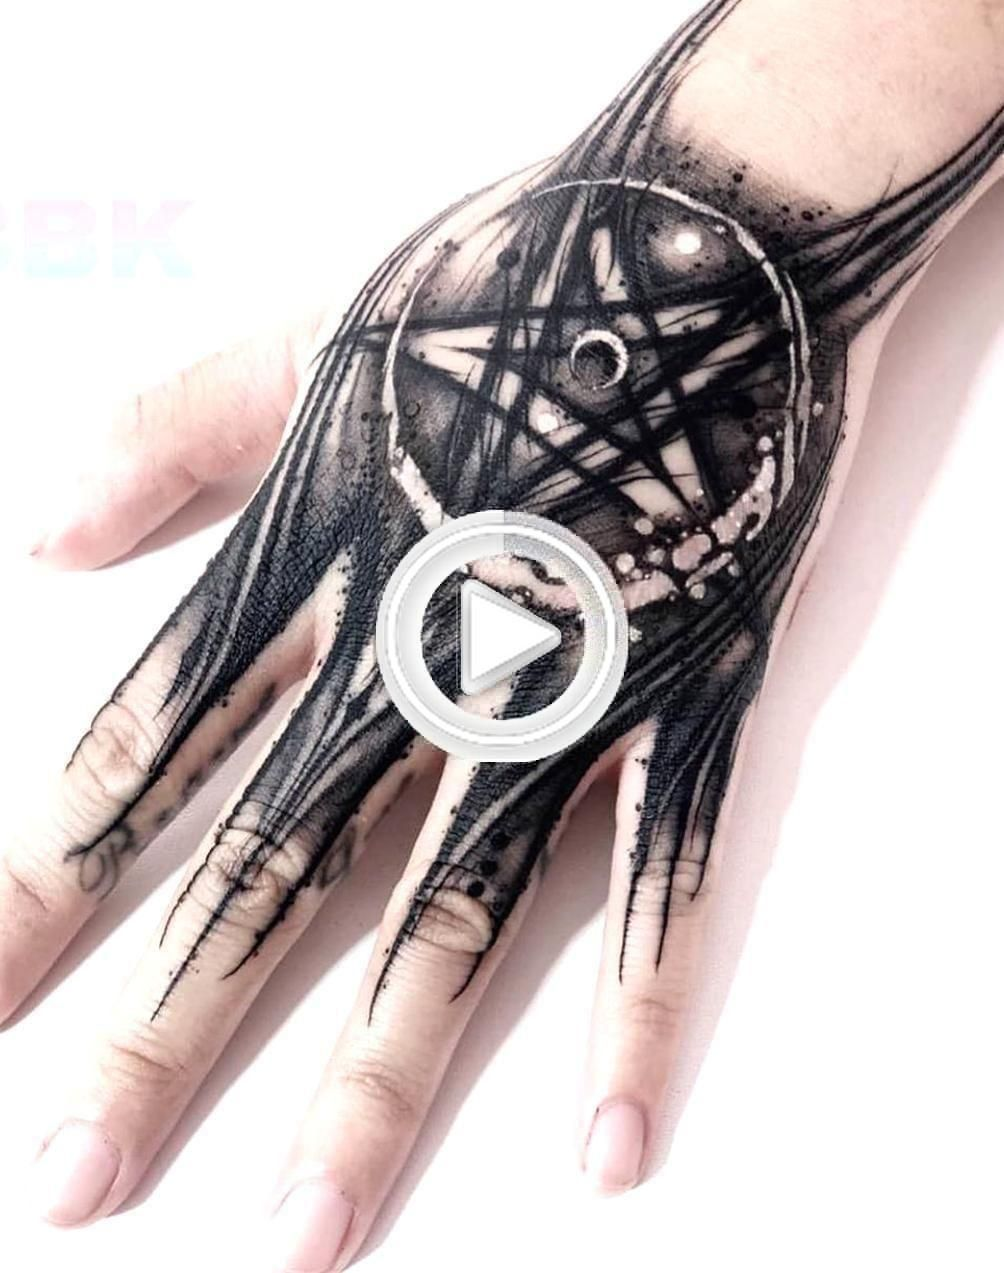 Pin by Ana on hand tattoos in 2020 | Hand tattoos, Side hand tattoos,